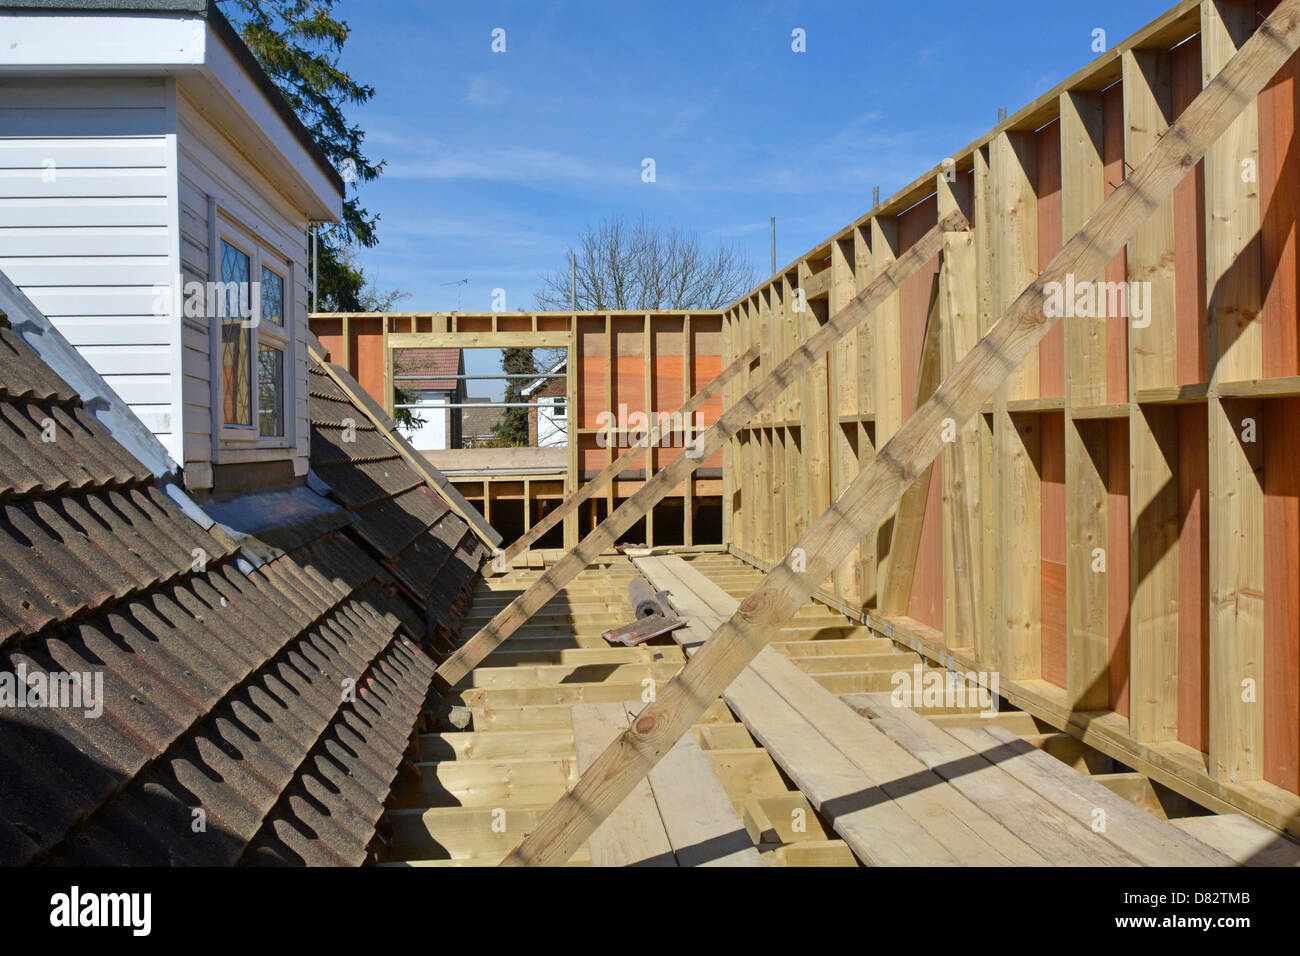 Detached house new bedroom extension first floor joist & timber frame plywood panels await new roof England - Stock Image